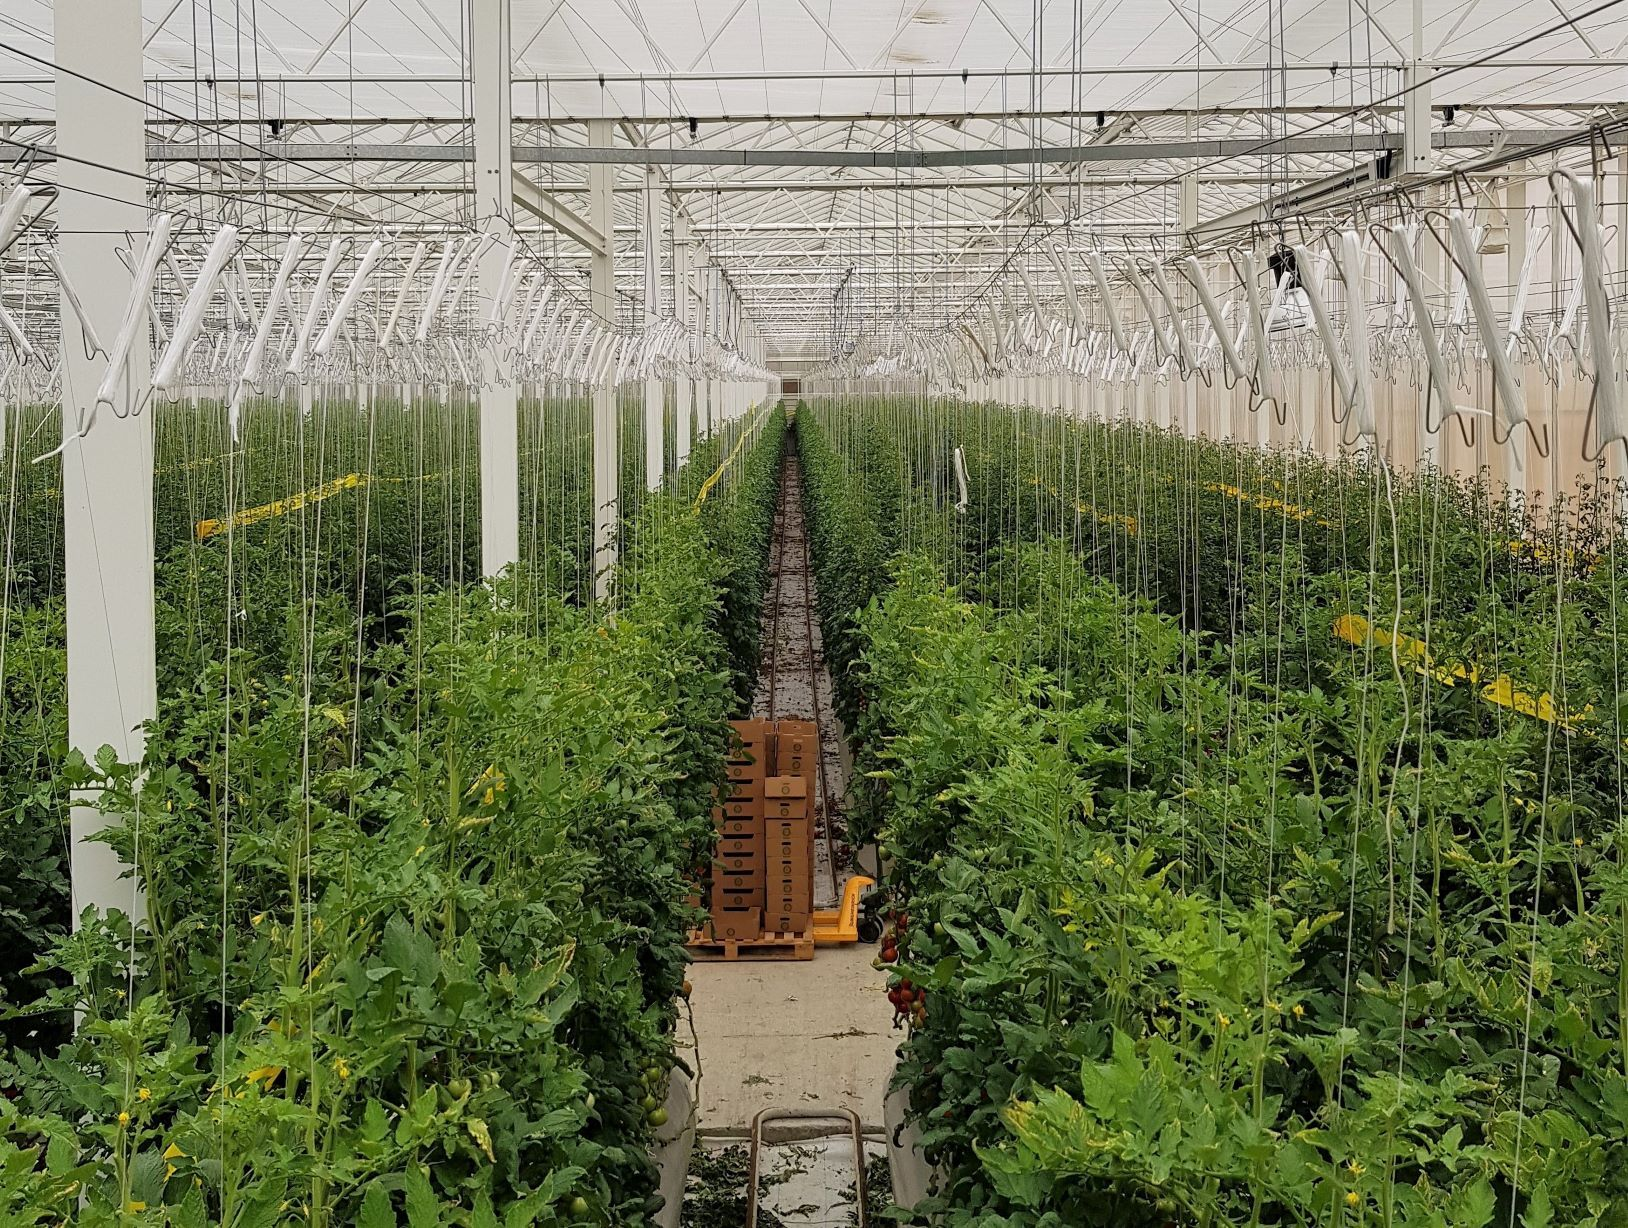 How do you grow tomatoes in the desert?